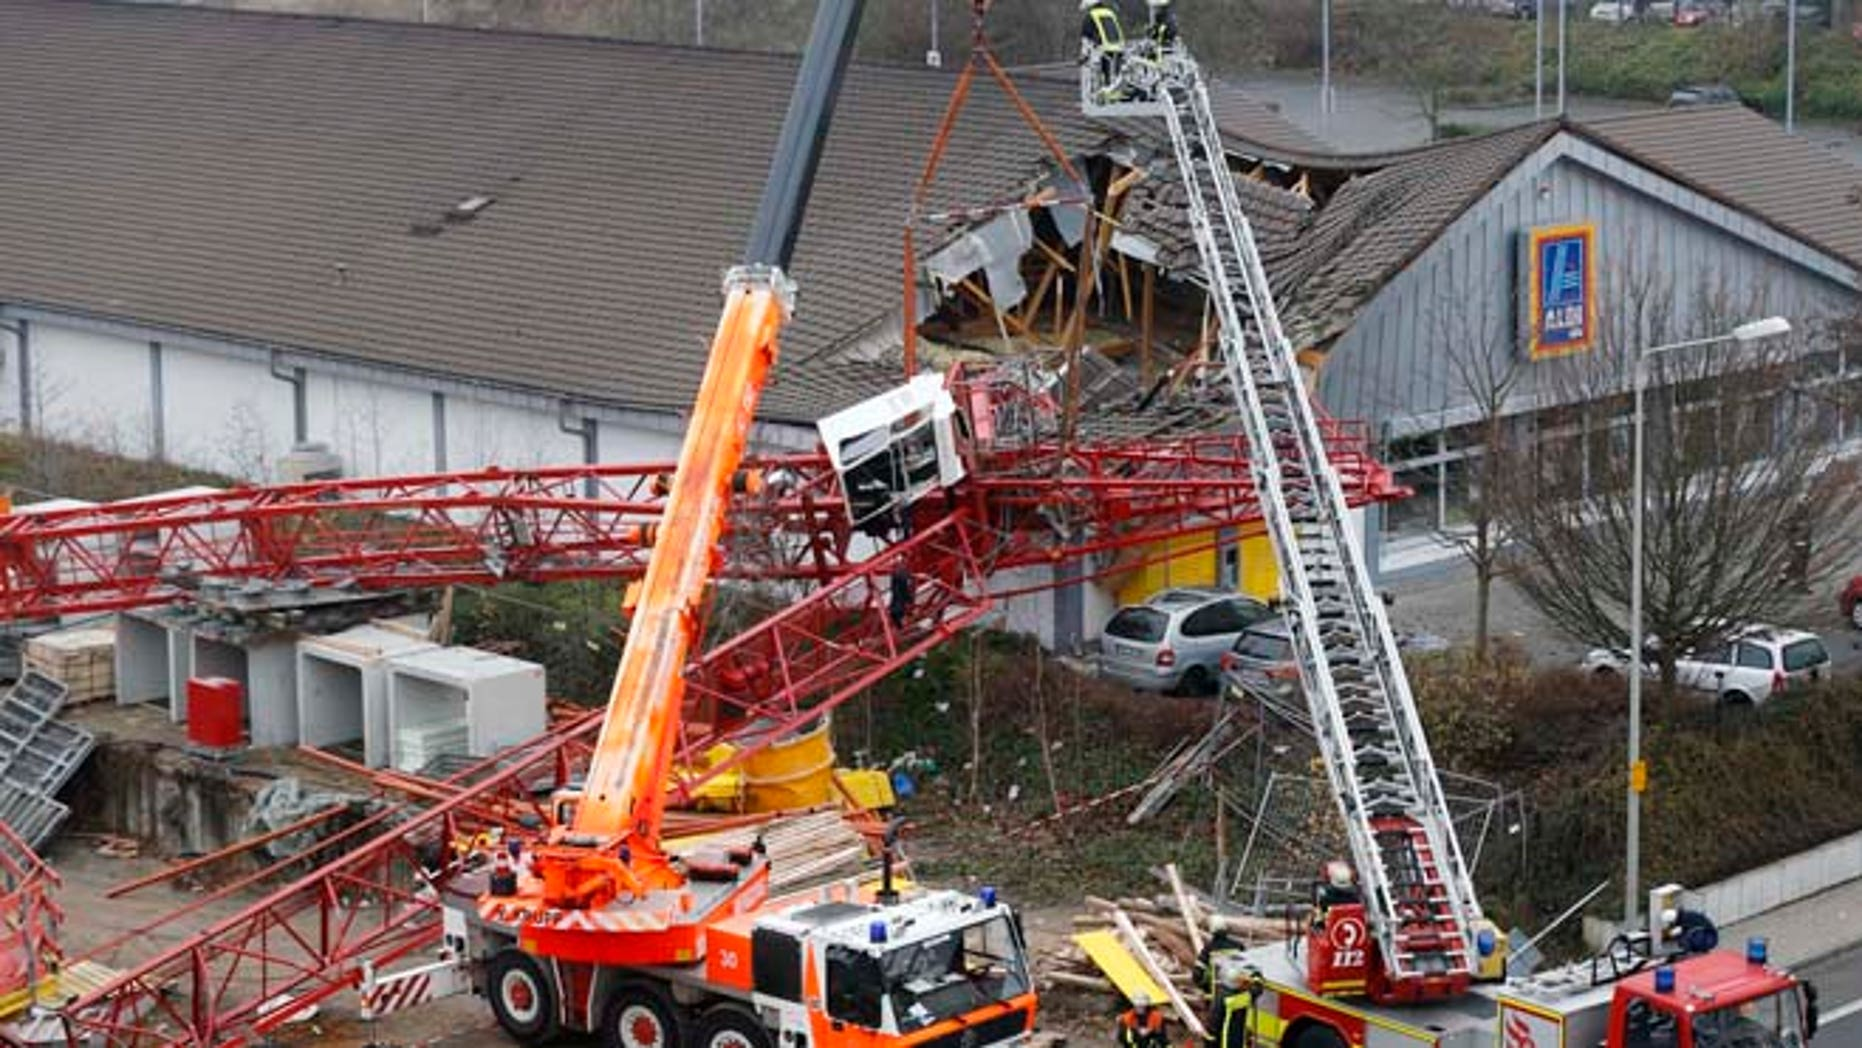 Dec. 11, 2013: A crane from a construction site has crashed into the roof of a supermarket in Bad Homburg, Germany.